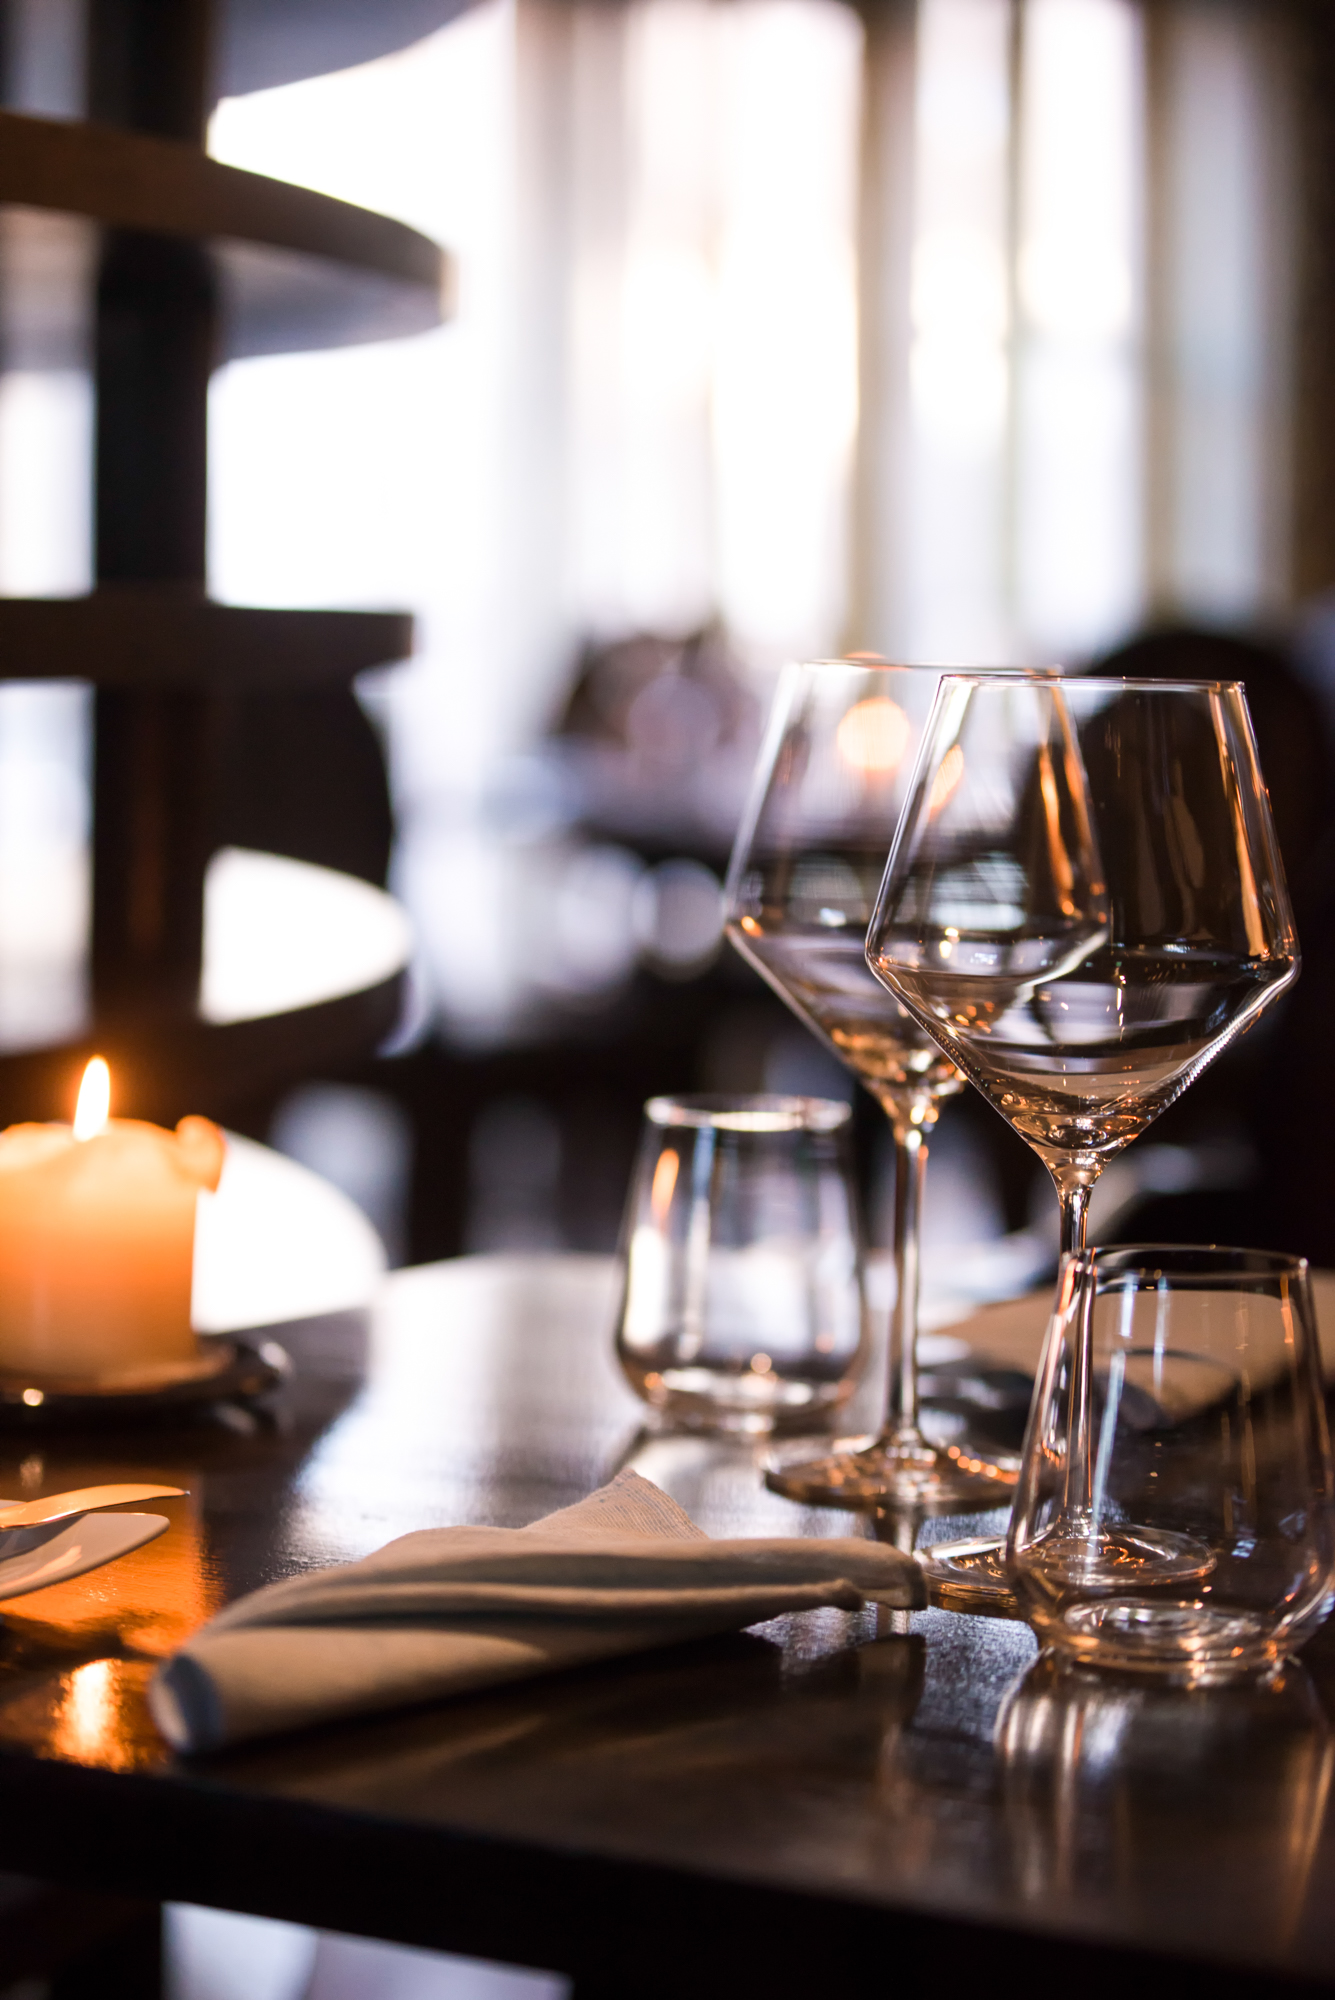 private events - From ten to one hundred we will be glad to help you customize any of your special events including business meetings, wedding rehearsals, company gatherings, private dining events or 'simply quiet evenings' with friends and family at one of the top restaurants in Galway.